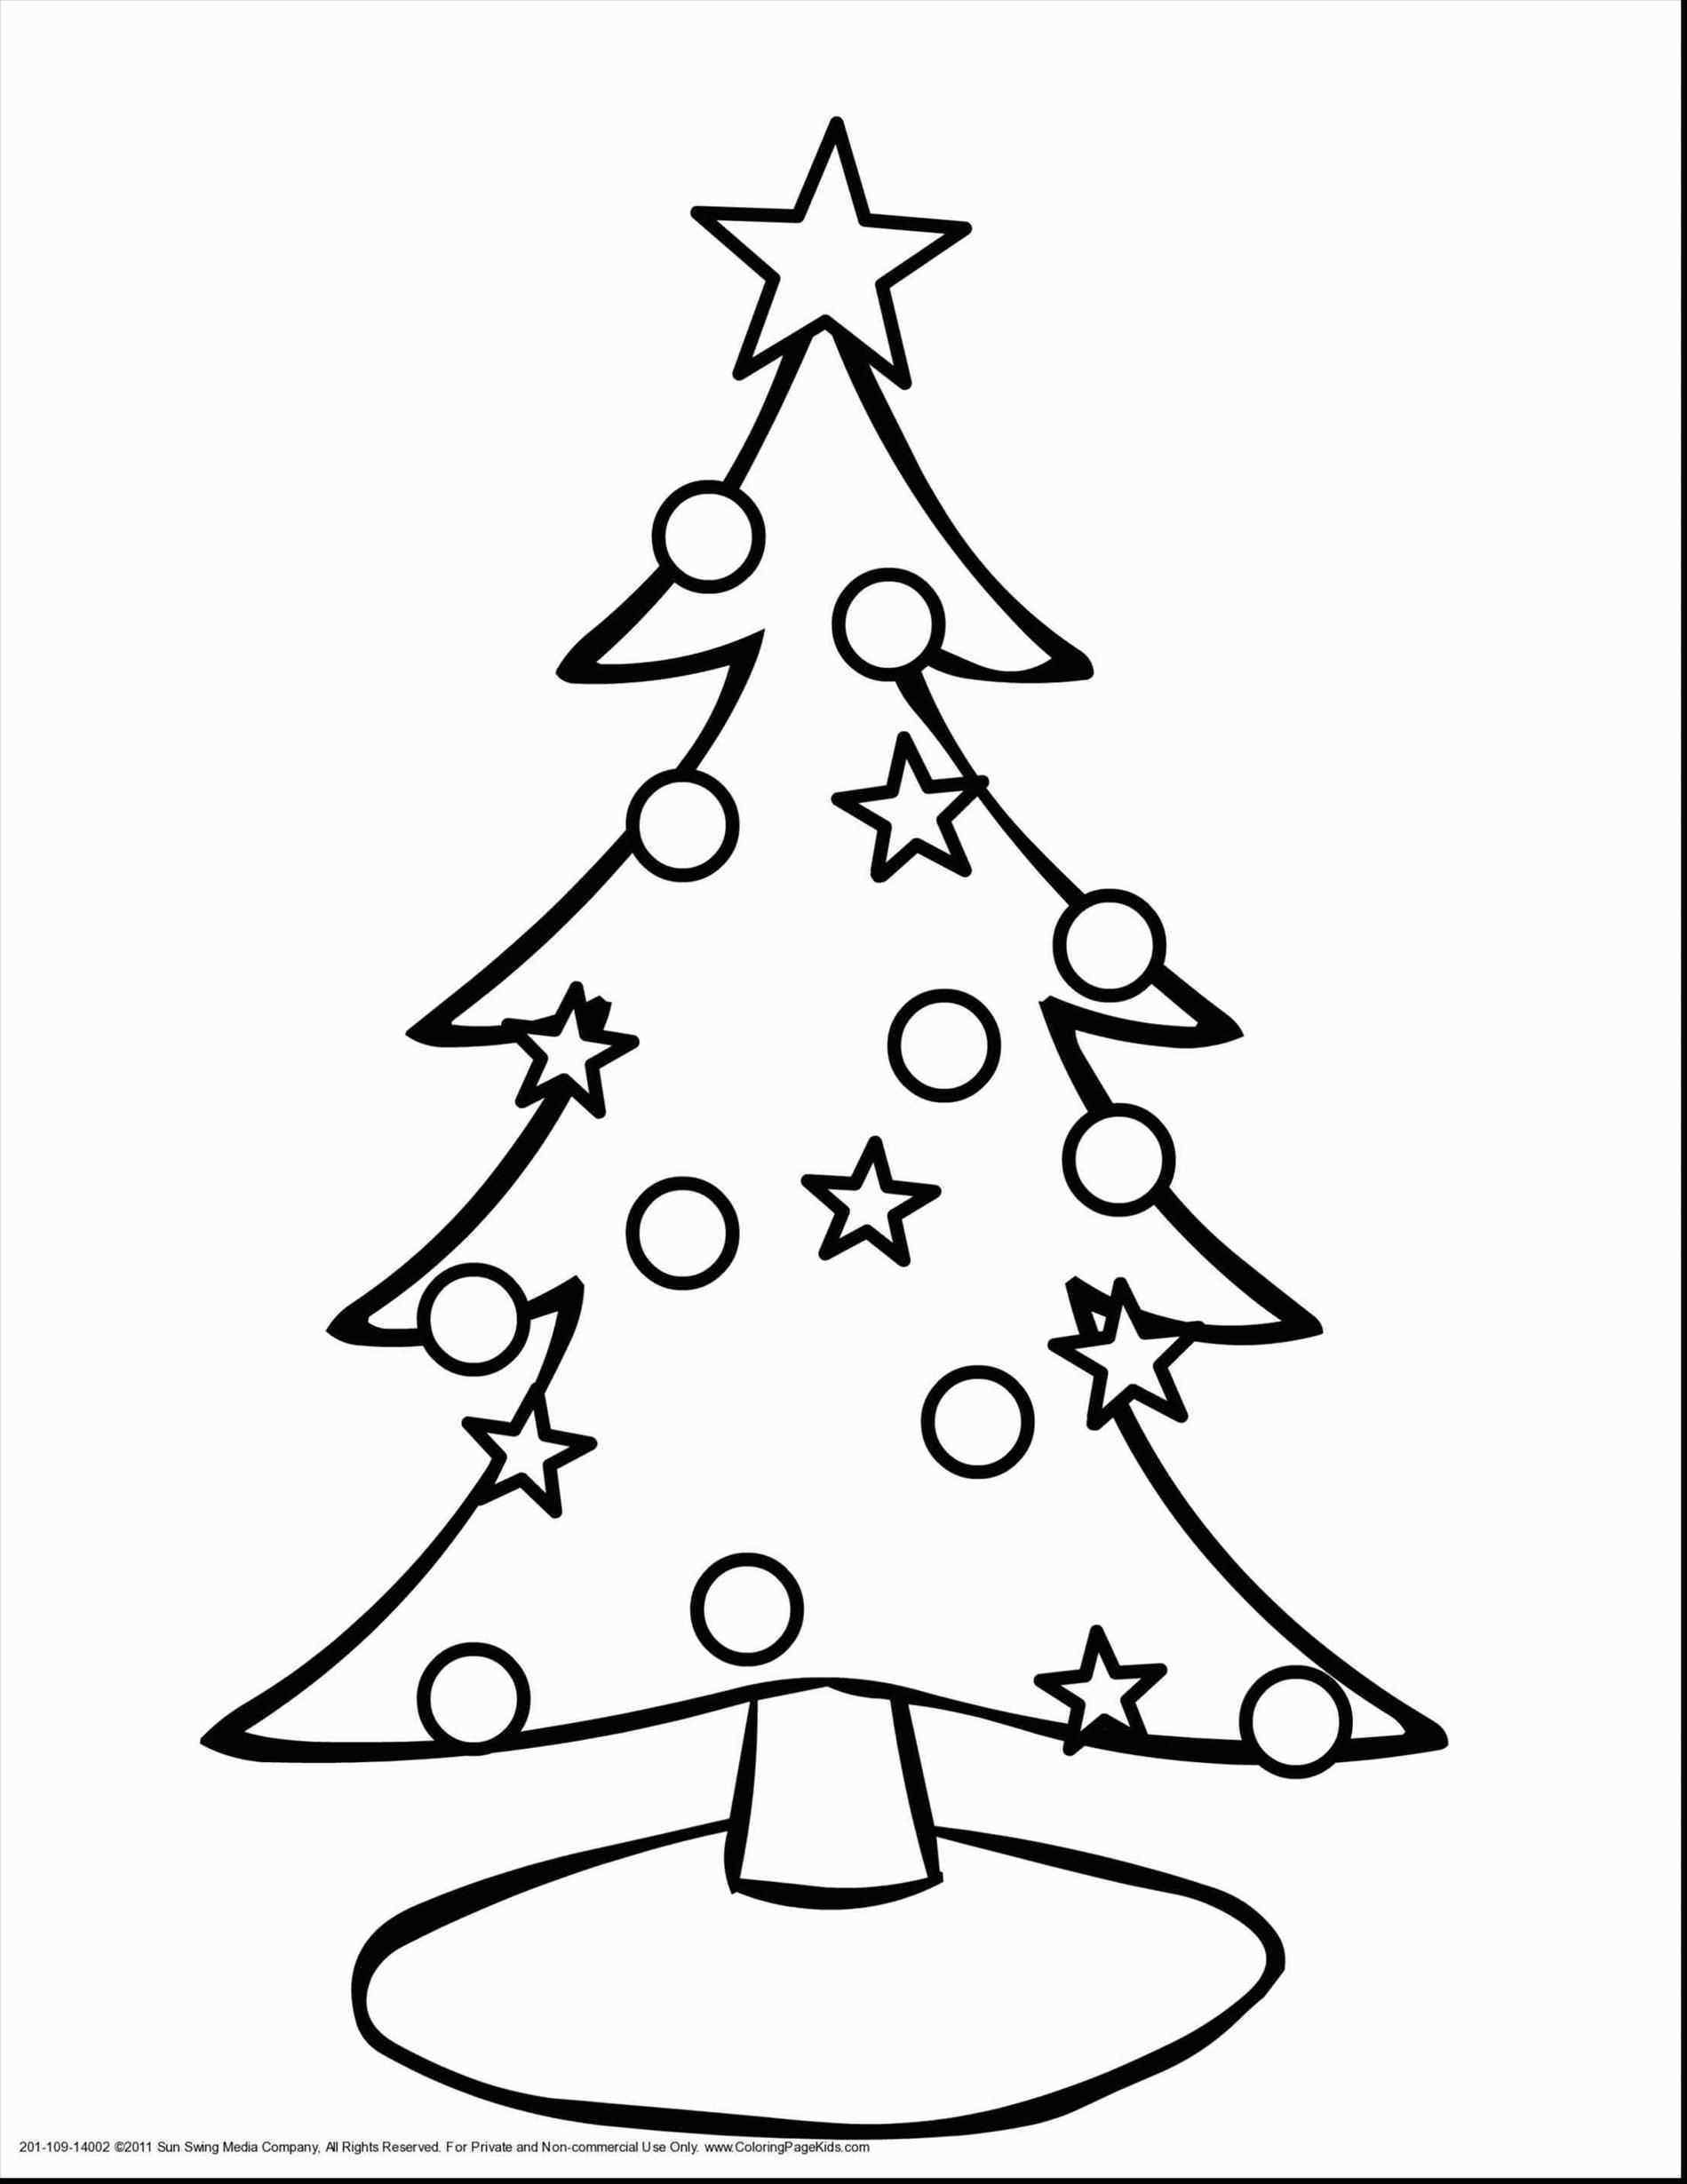 12 + Lovely Simple Christmas Drawings Ideas Christmas